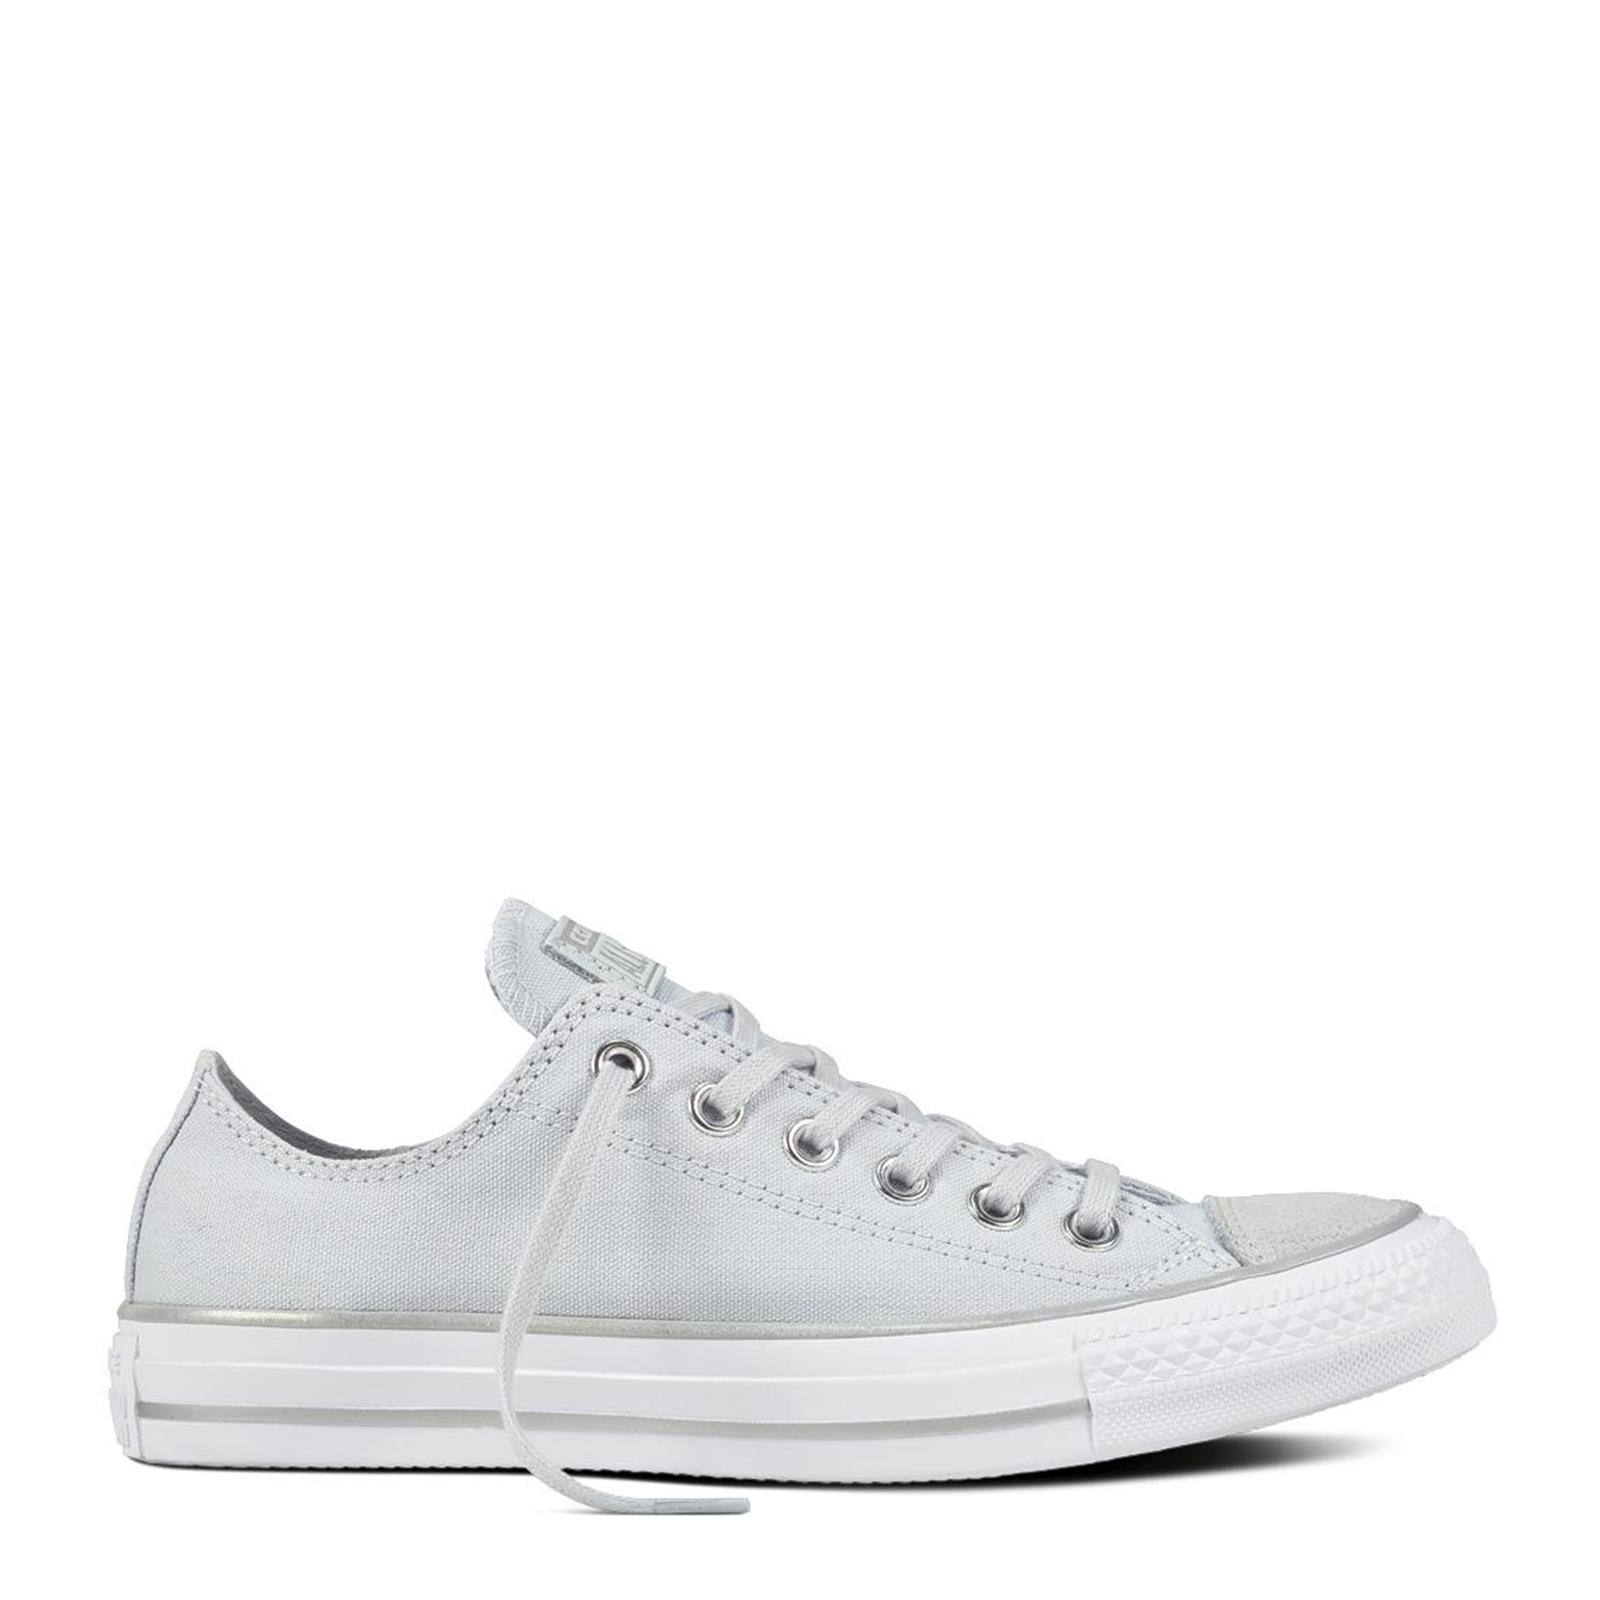 0a9ff68651cc52  SALE  CONVERSE CHUCK TAYLOR ALL STAR - OX - PURE PLATINUM SILVER